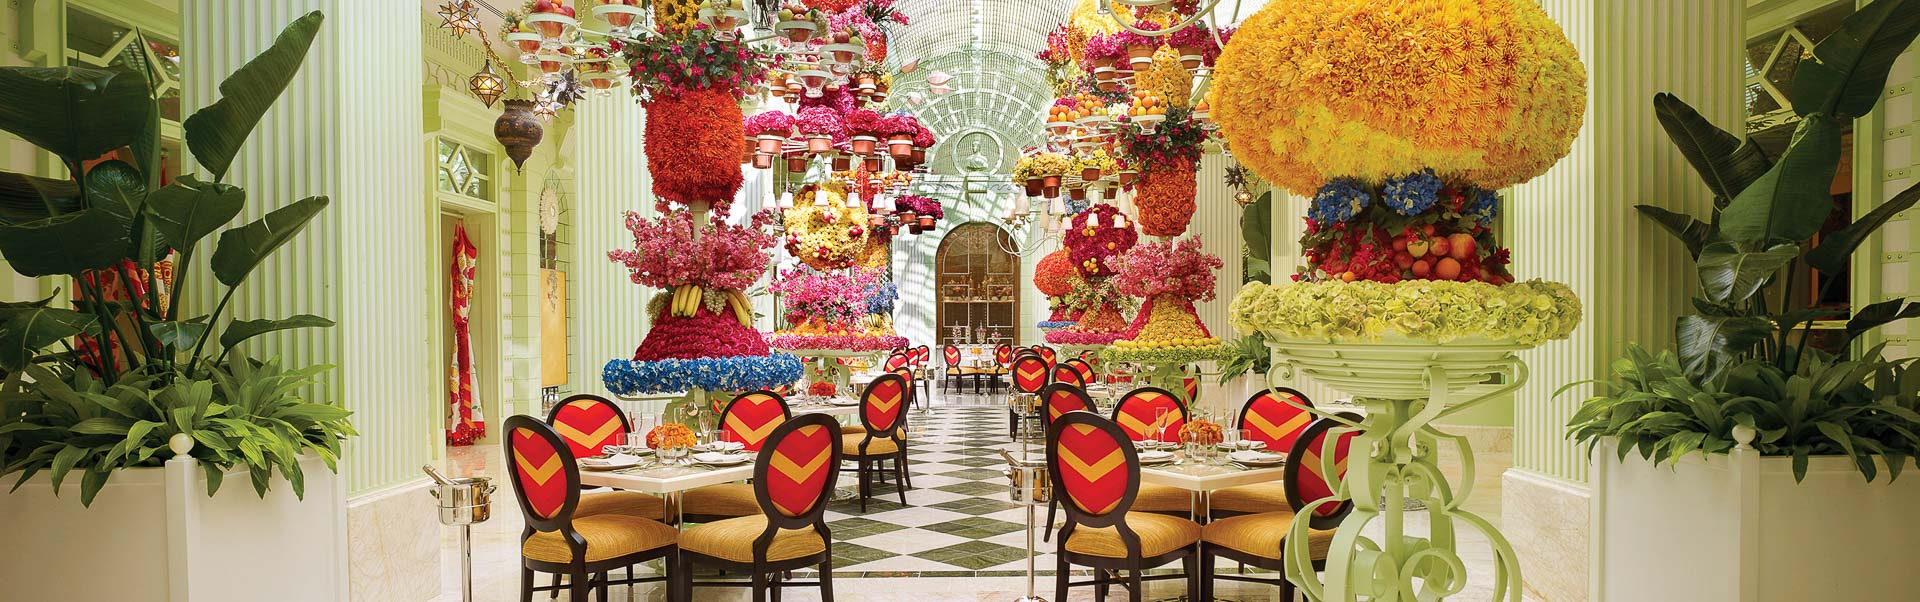 Get To Know The Best Buffets in Las Vegas